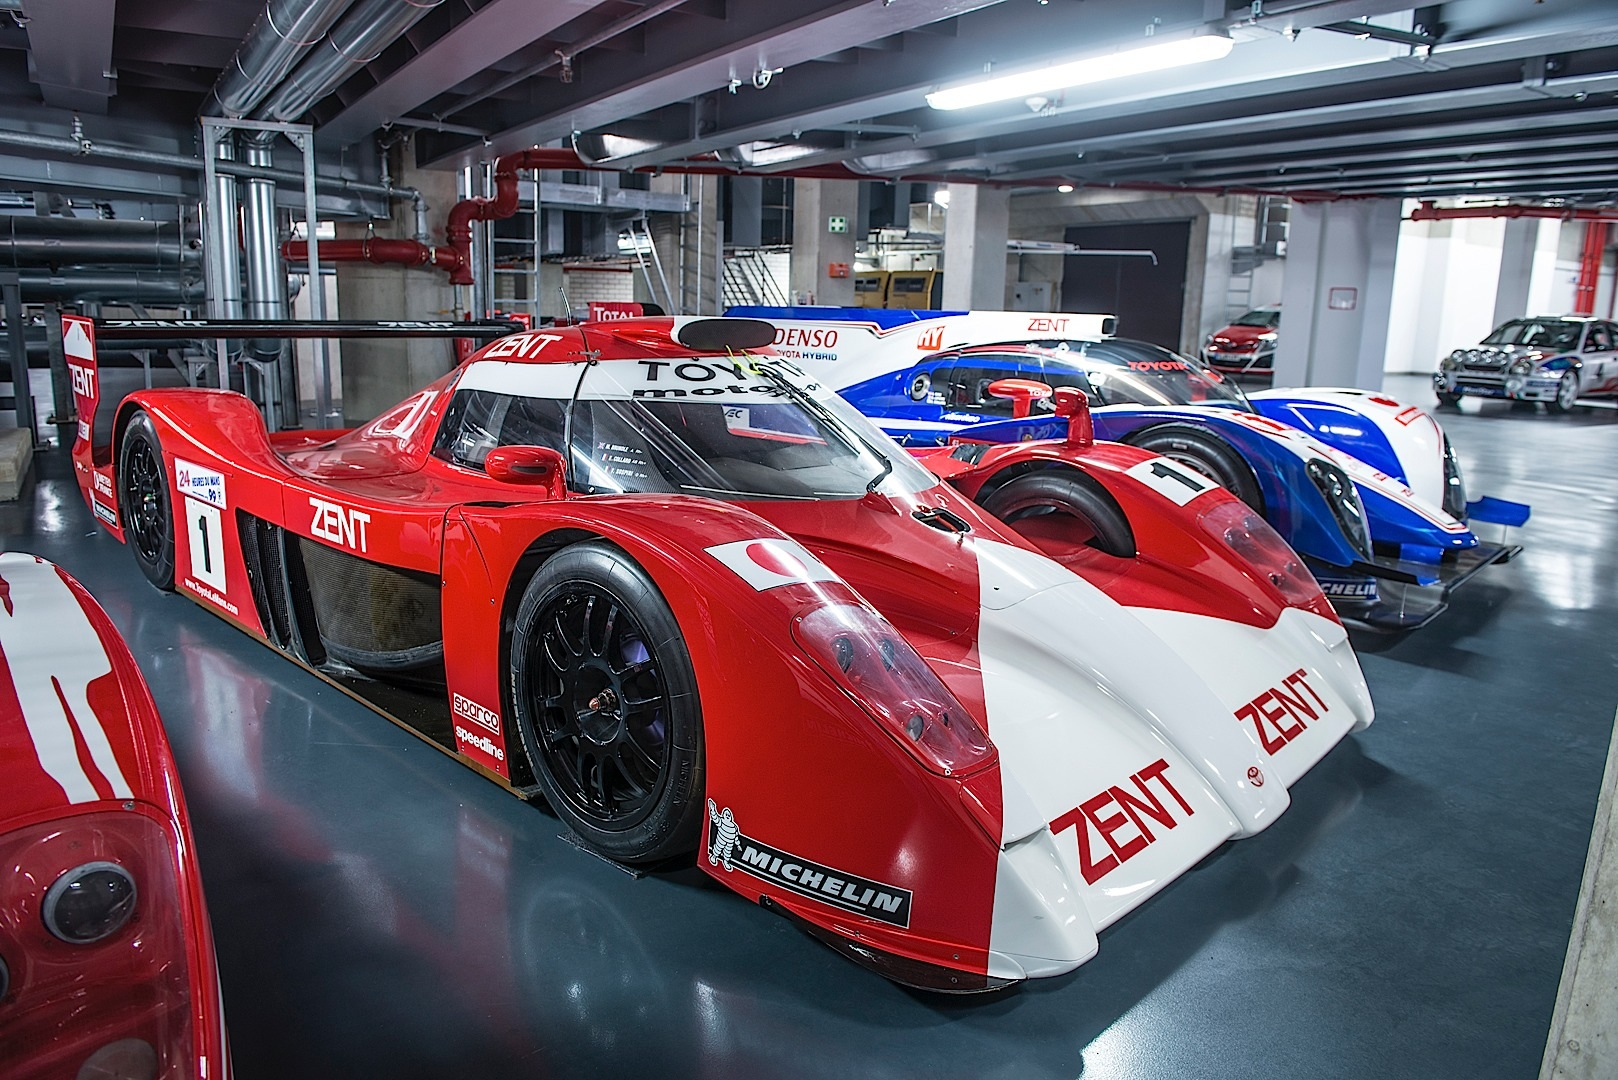 Toyota In Irvine >> Toyota Le Mans History Under One Roof - autoevolution